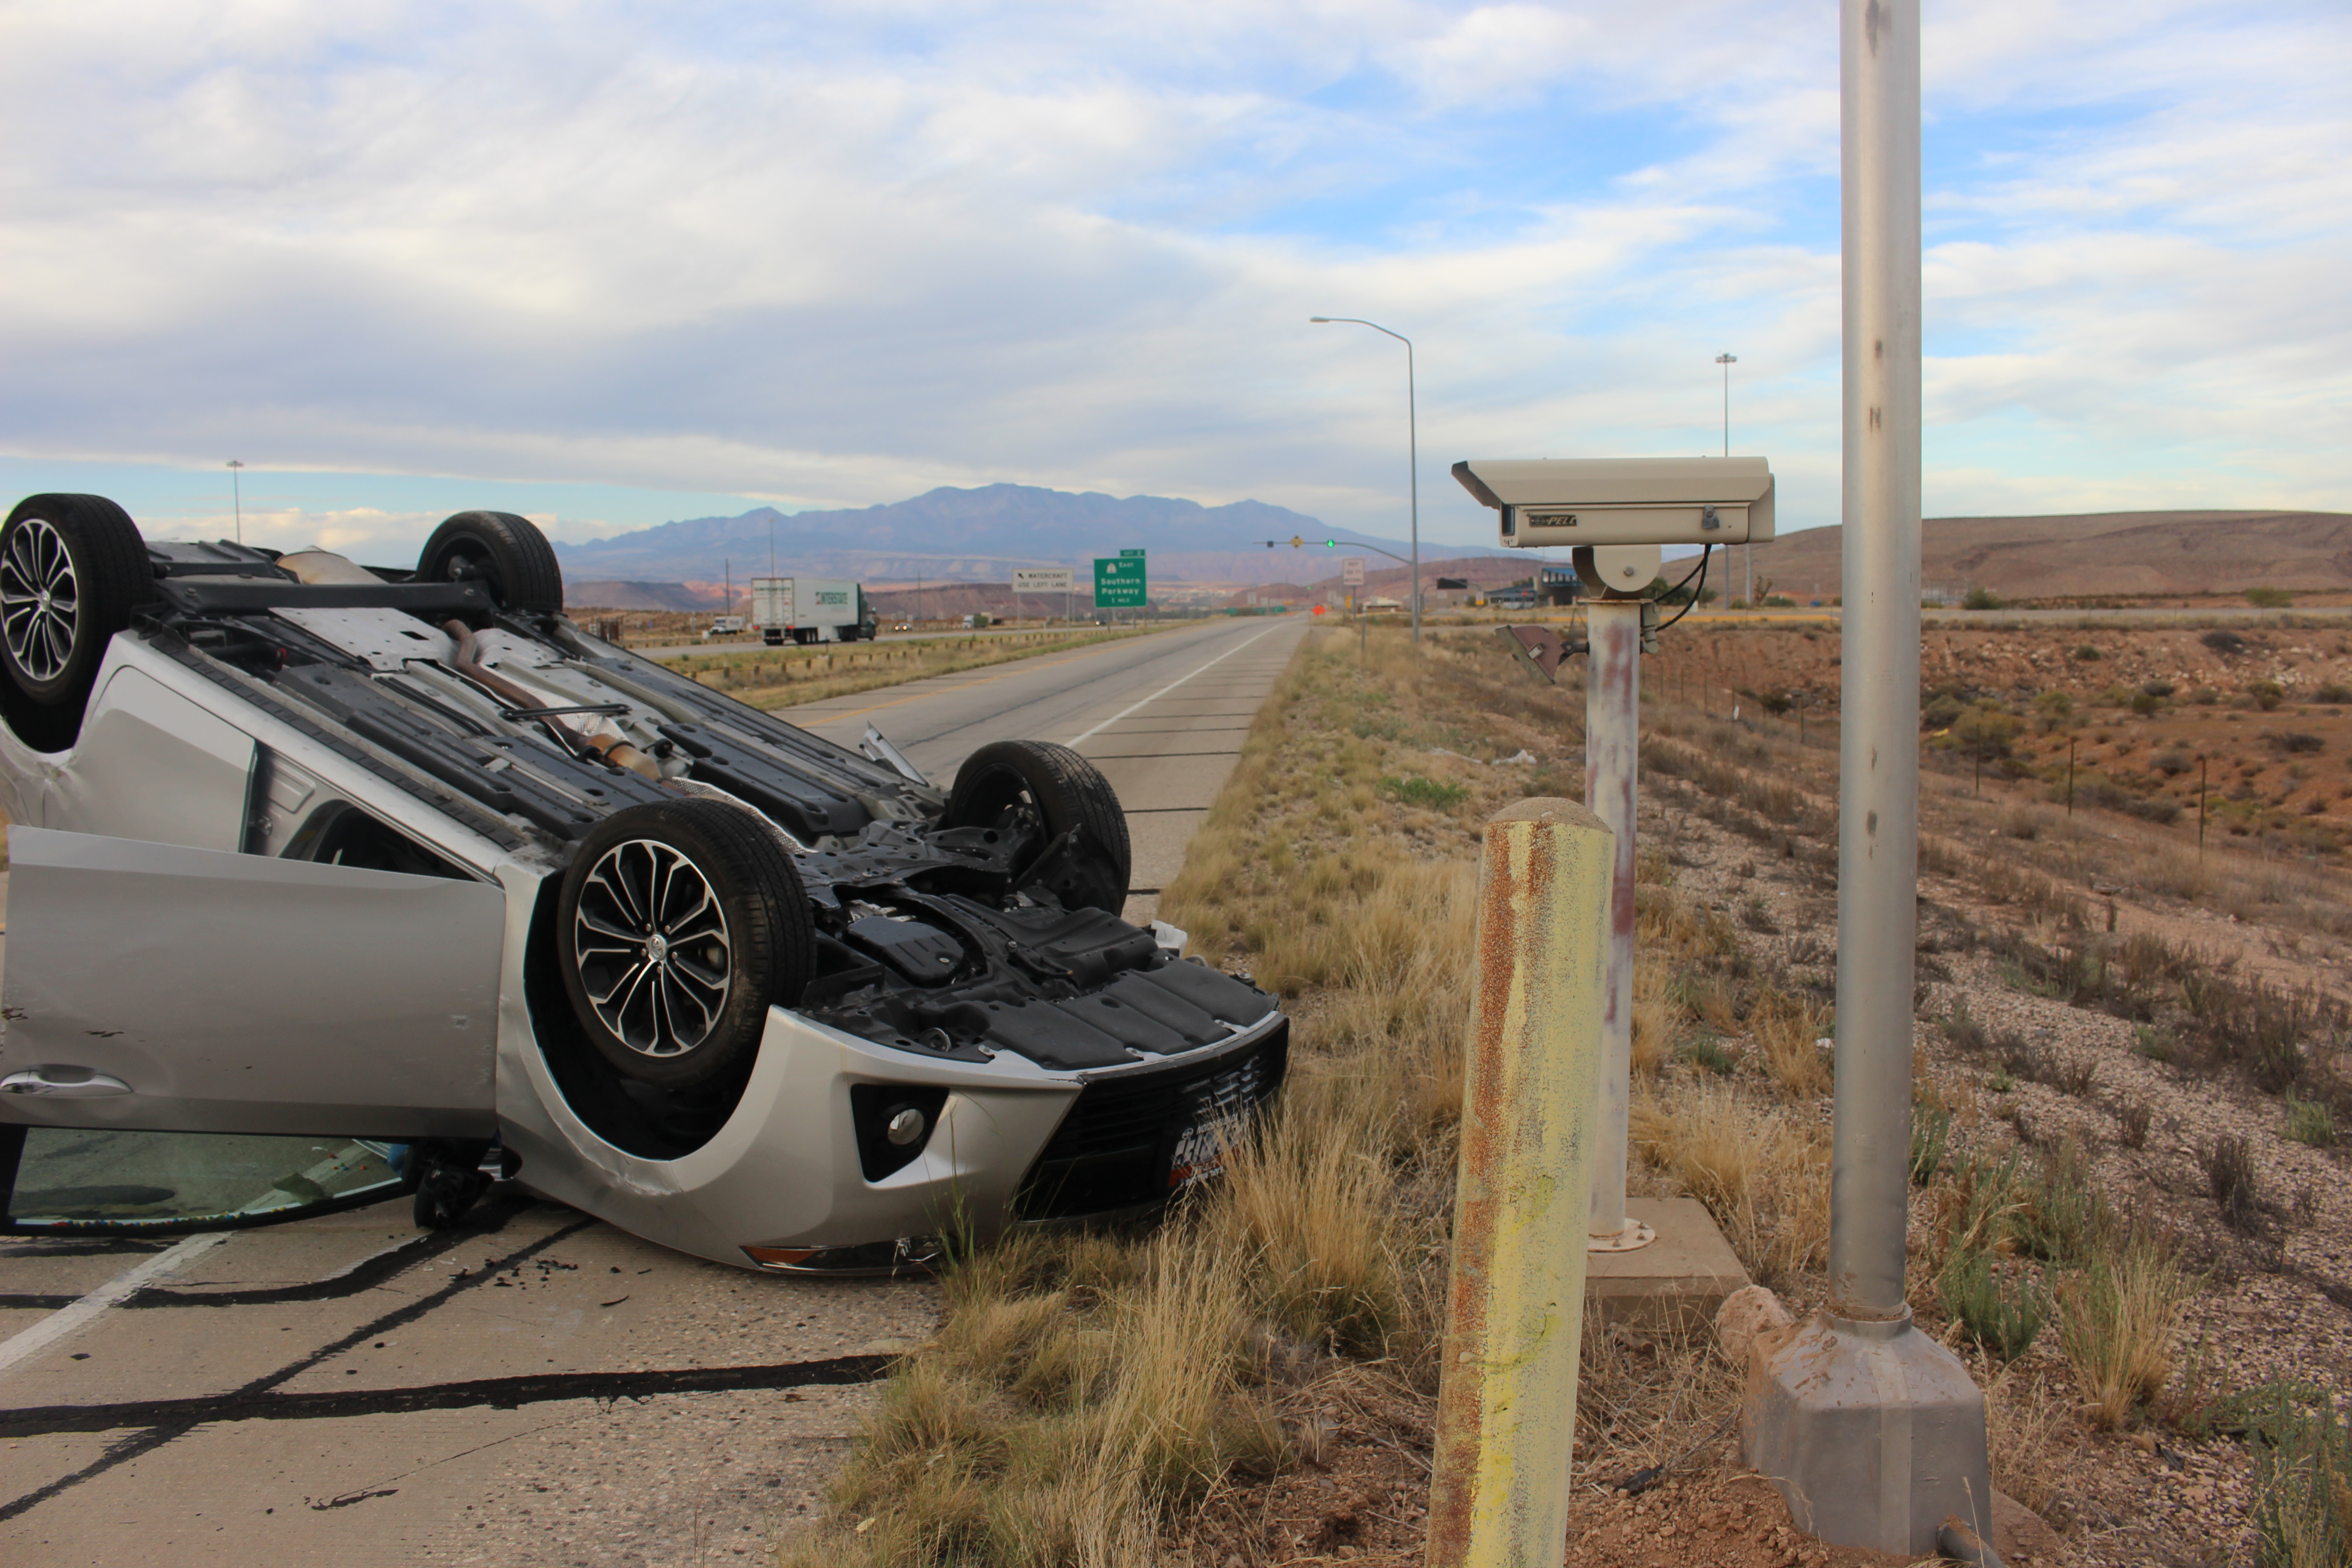 A car rests upside down after rolling over at the Utah-Arizona port of entry, Oct. 14, 2016 | Photo by Joseph Witham, St. George News